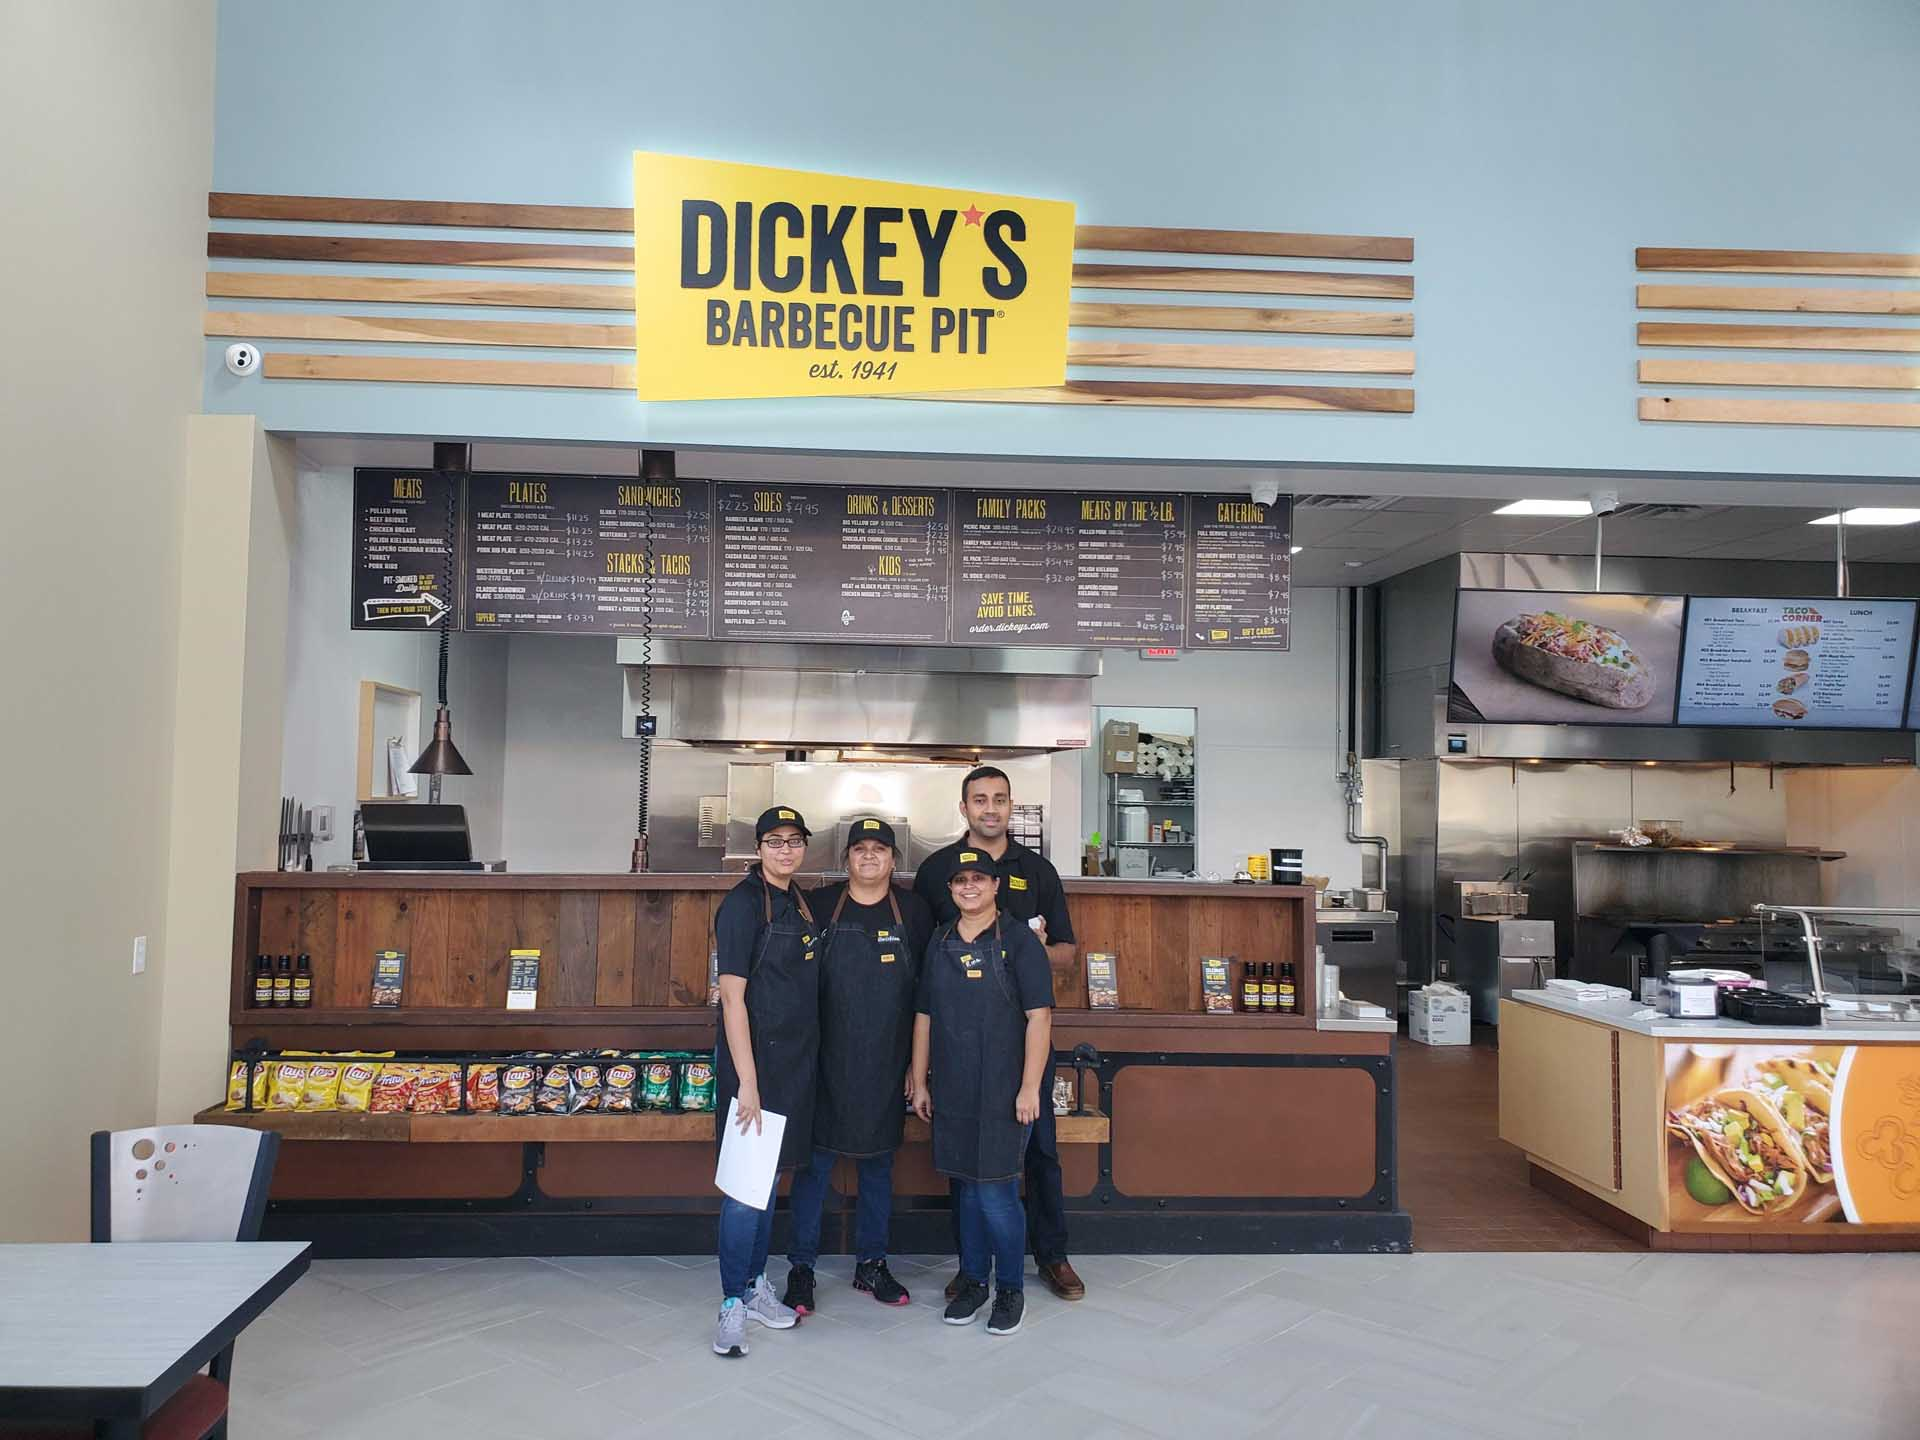 Dickey's Barbecue Pit Arrives in Katy, Texas